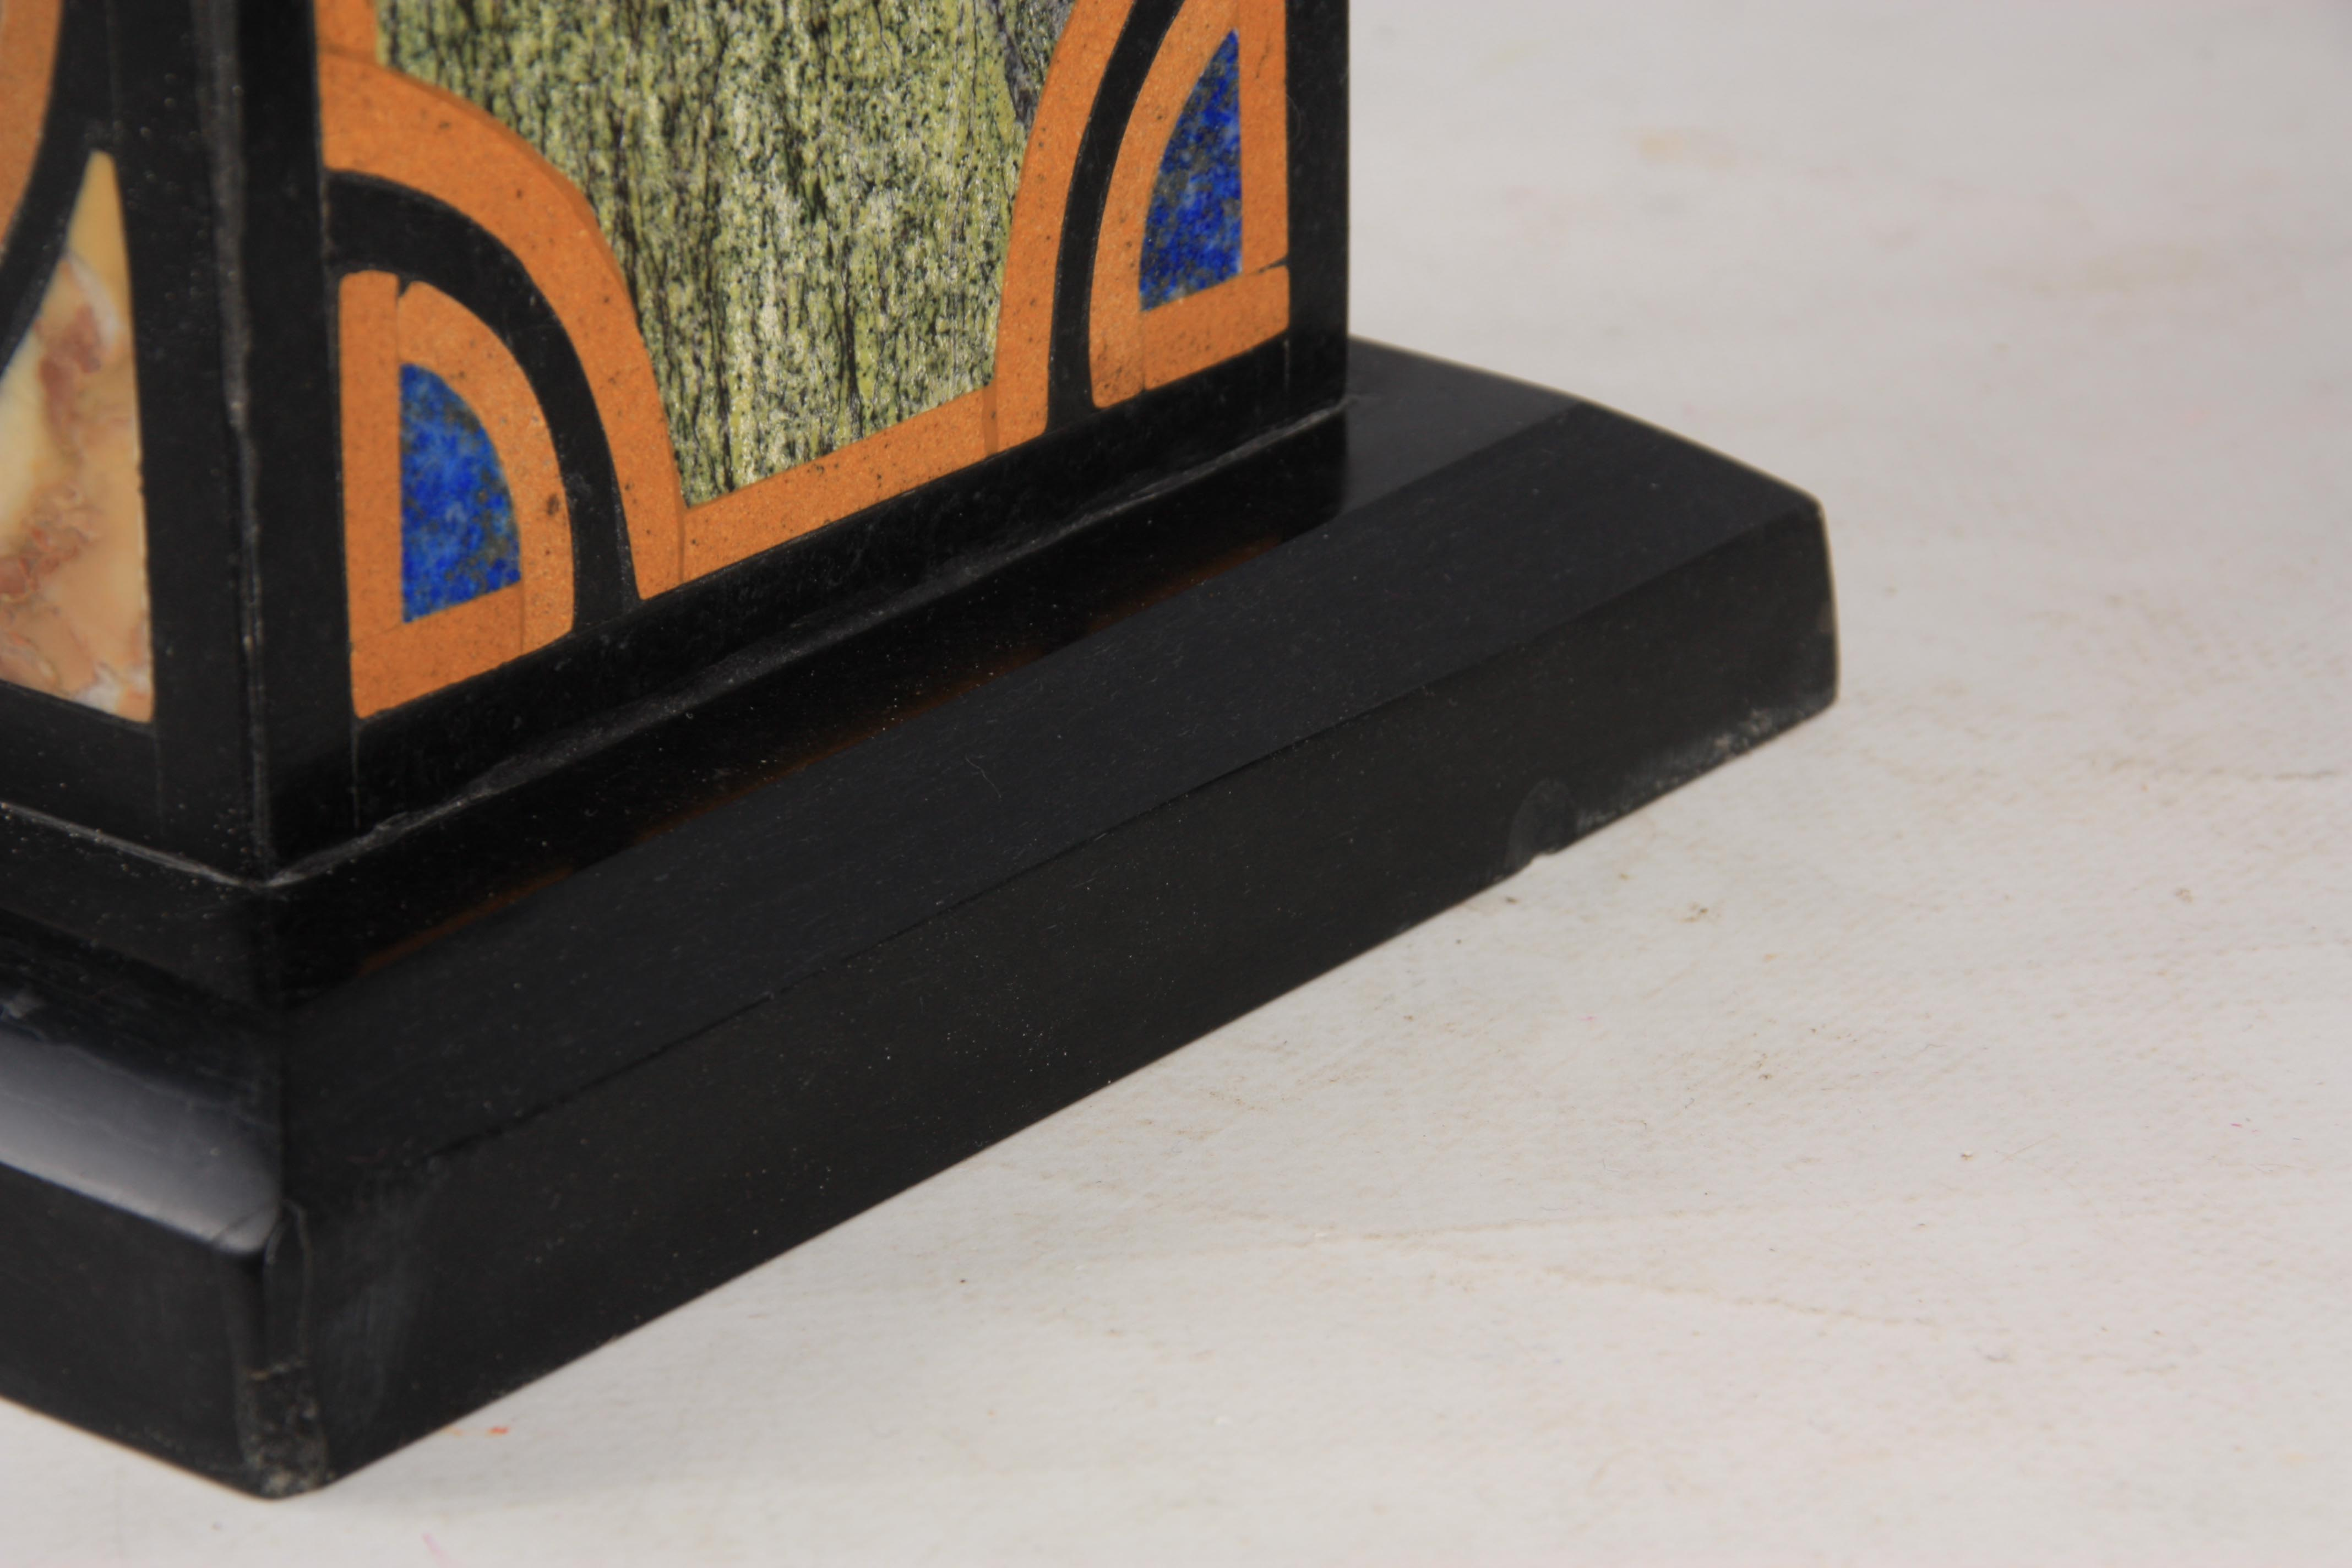 A LARGE AND IMPRESSIVE PAIR OF 20TH CENTURY REGENCY STYLE SPECIMEN MARBLE OBELISKS inlaid with - Image 6 of 7